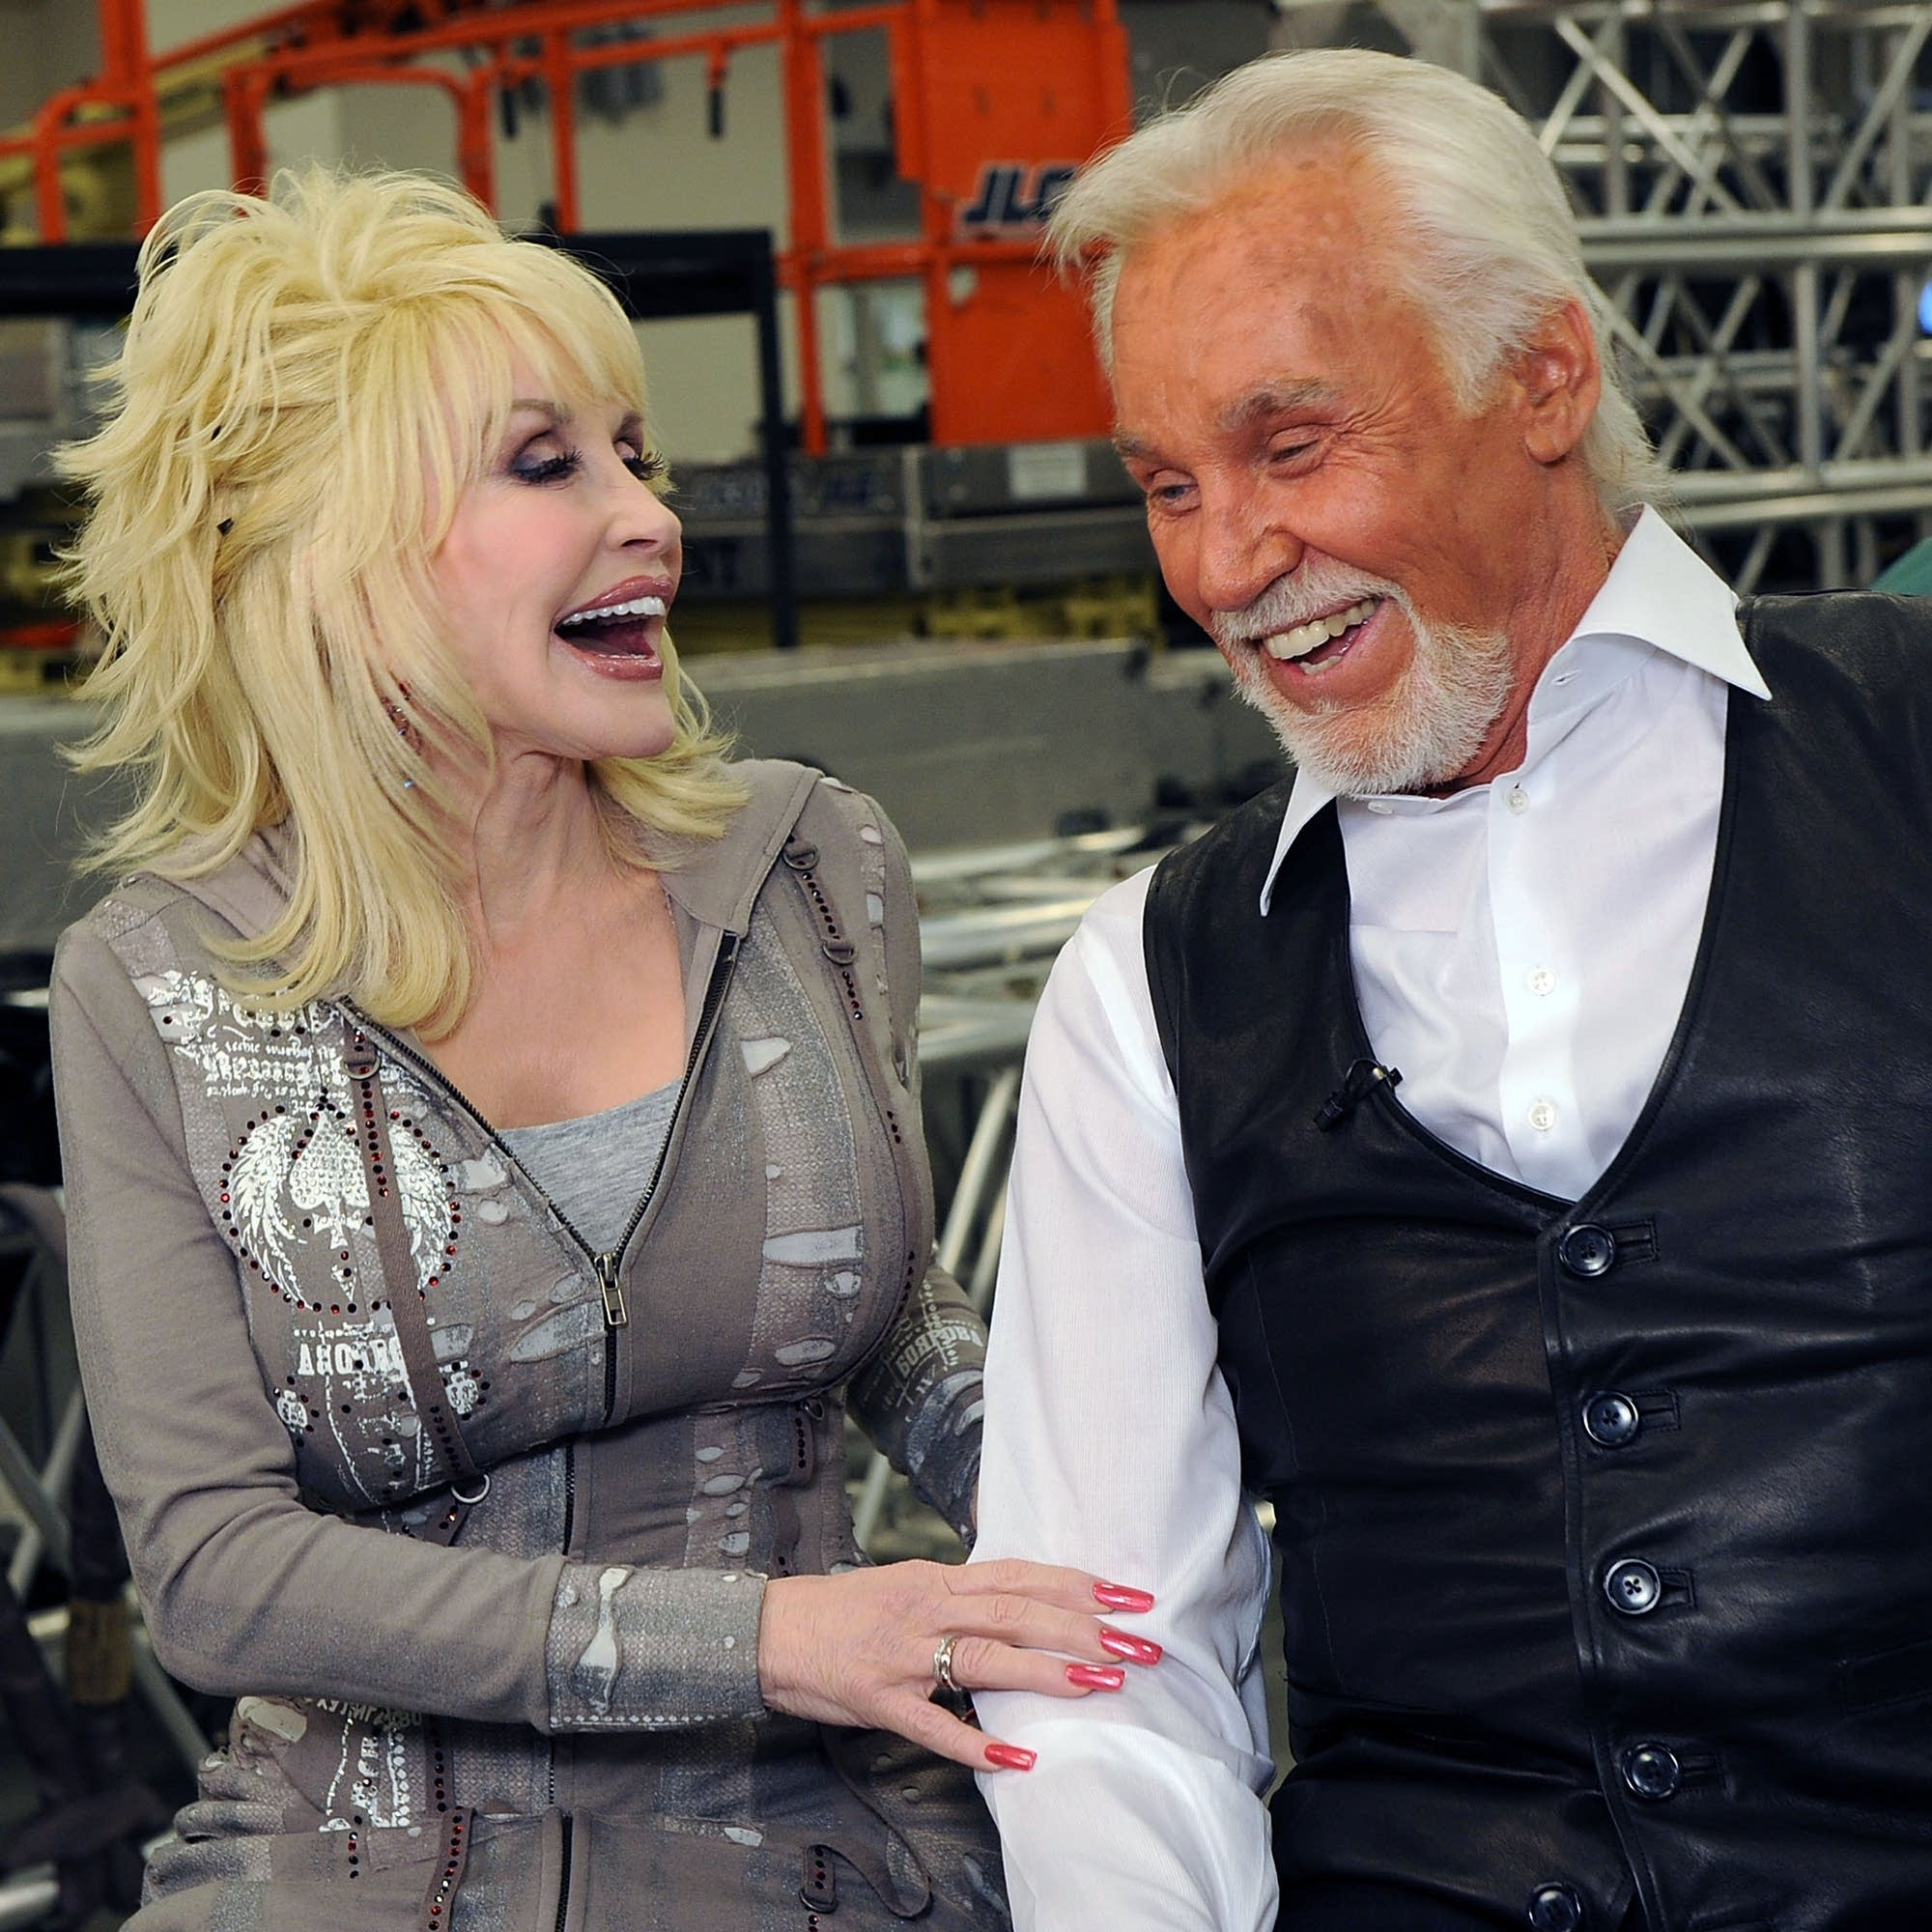 Dolly Parton and Kenny Rogers in 2010.